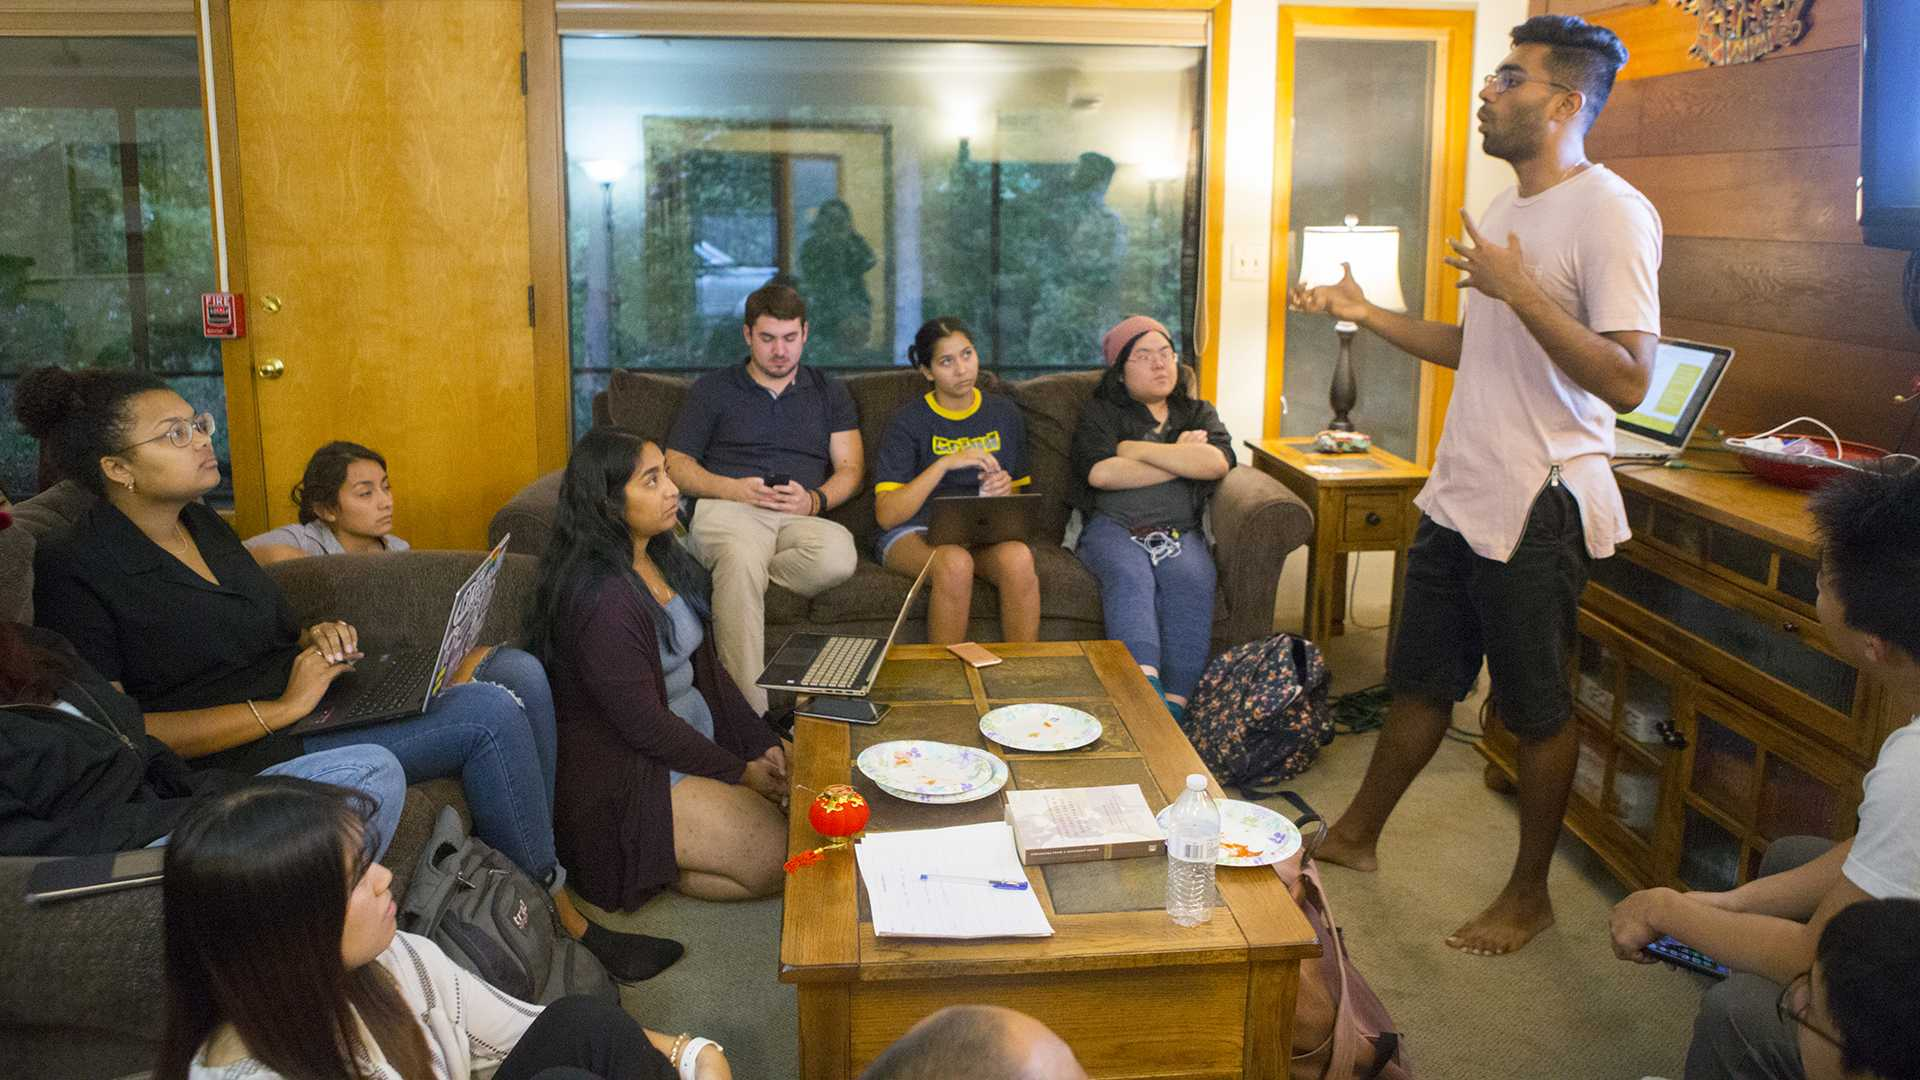 Students converse during the UISG Asian American Discussion Circle at the Asian Pacific American Cultural Center on Monday, Sept. 18, 2017. The event served as an outlet for Asian UI students to explore identity and express issues related to Asian students. (Lily Smith/The Daily Iowan)